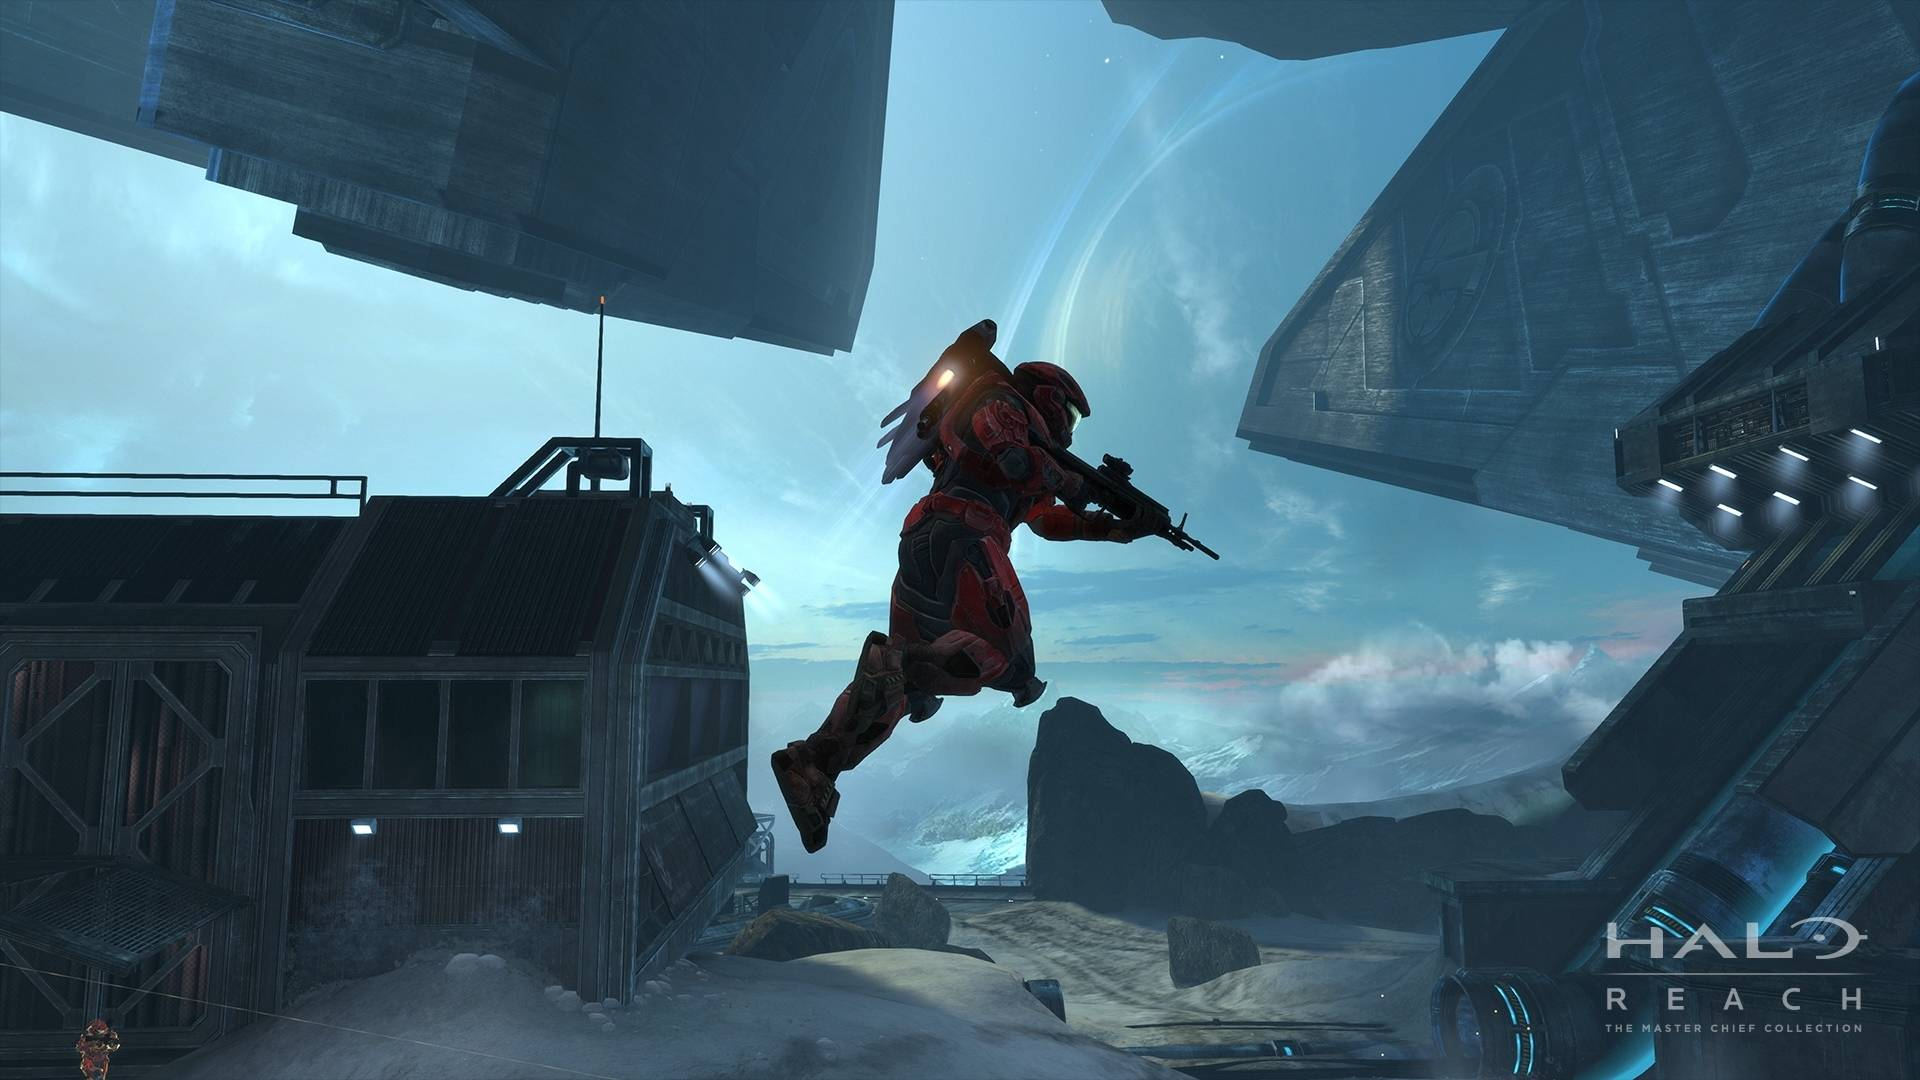 A Remastered Halo Reach Joins The Master Chief